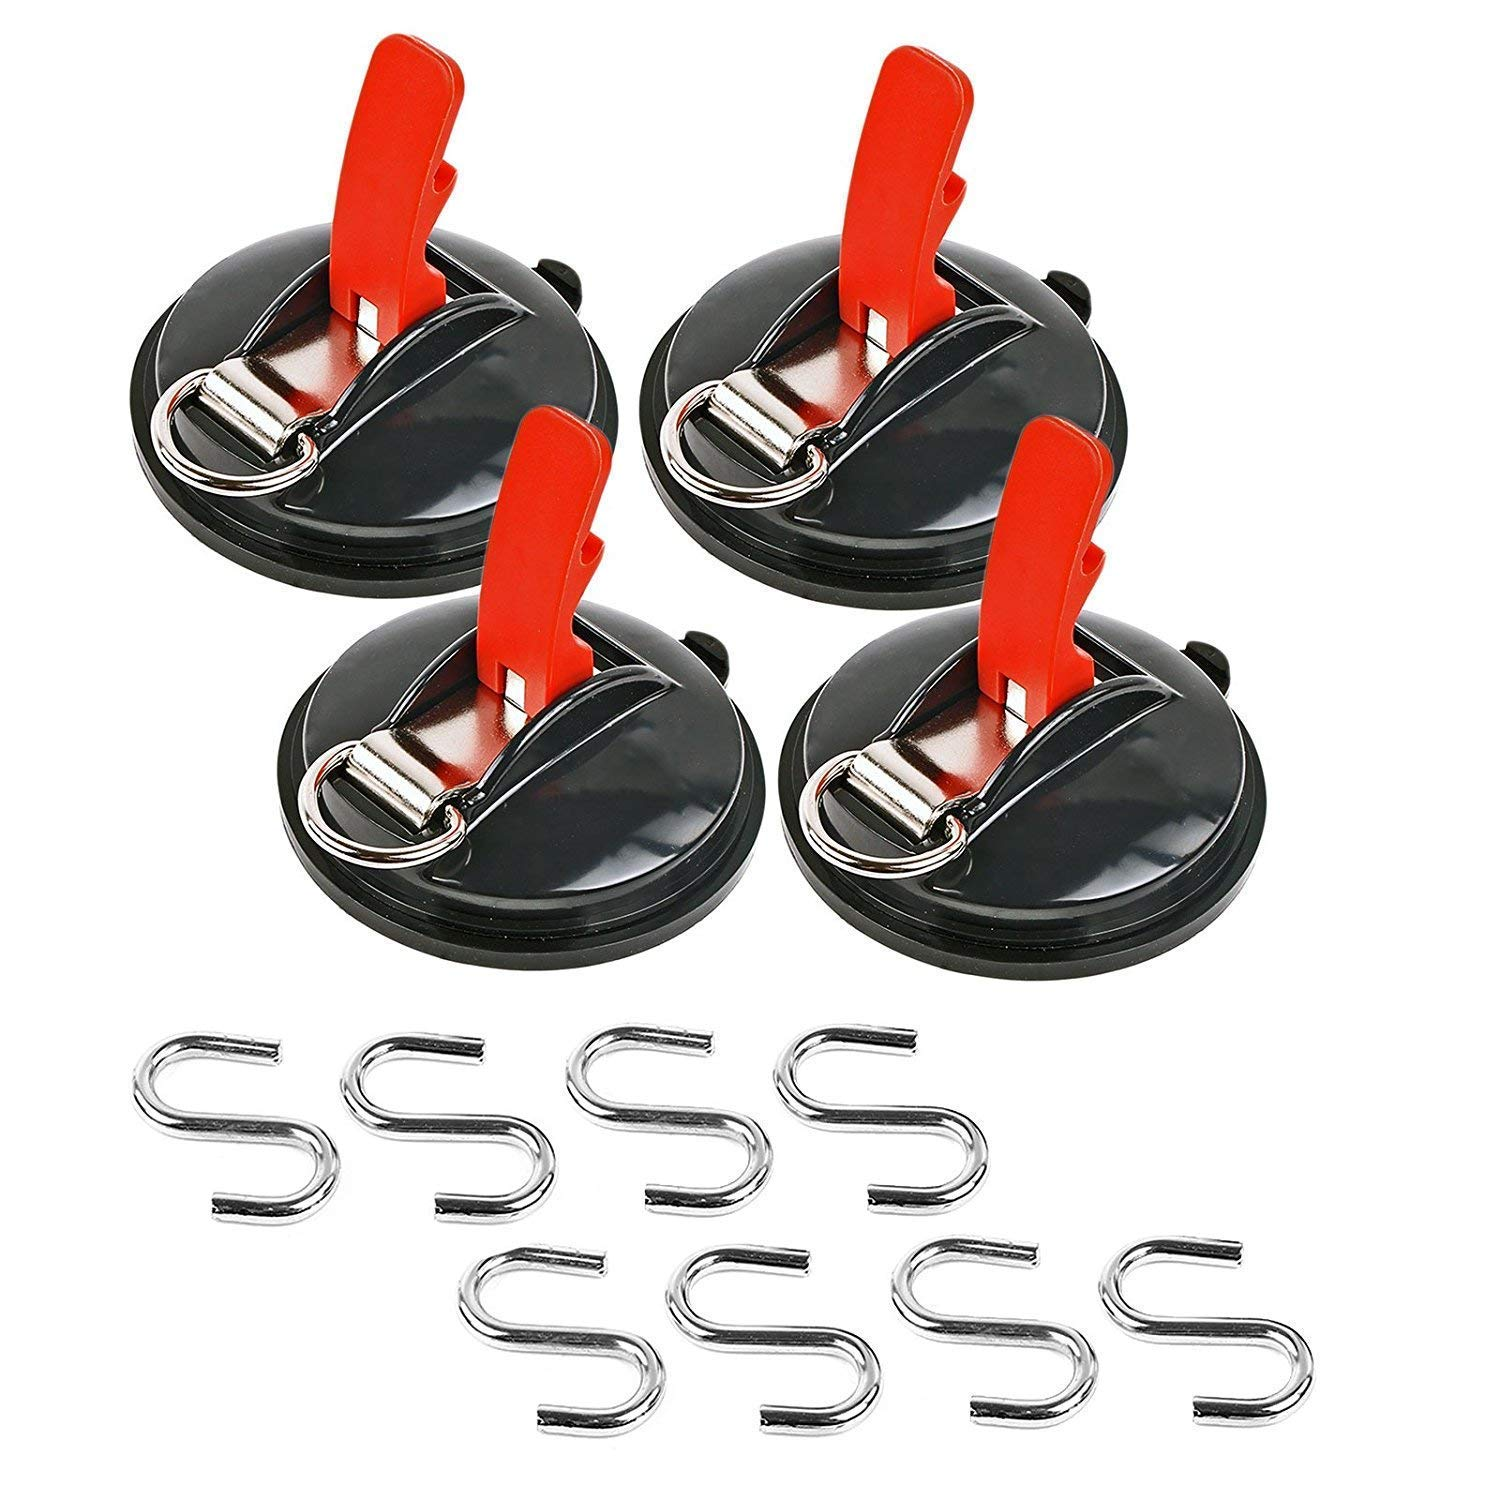 car suction cup suction cup type car clamp XZANTE suction cup attachment max multi-function suction cup